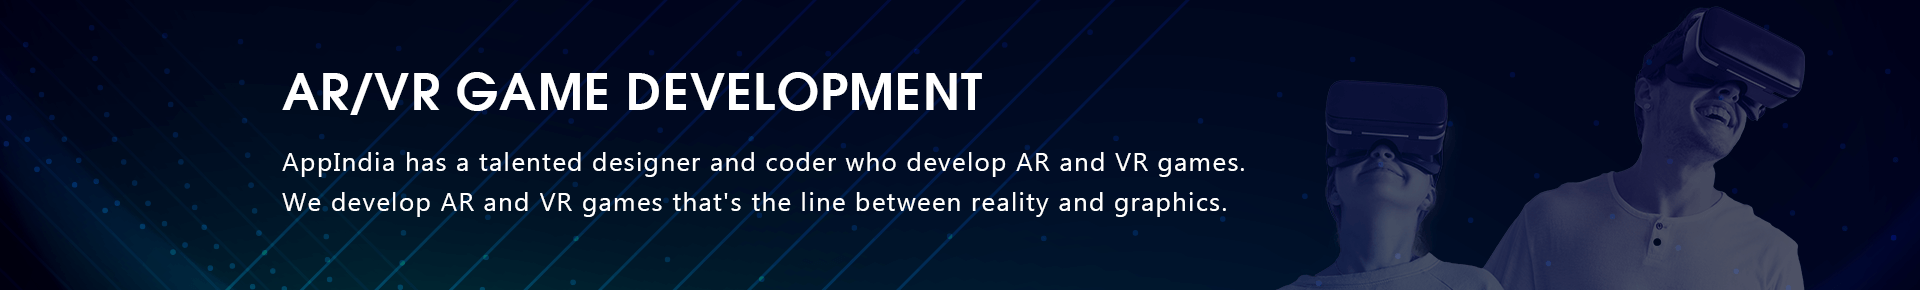 AR_VR Game Development